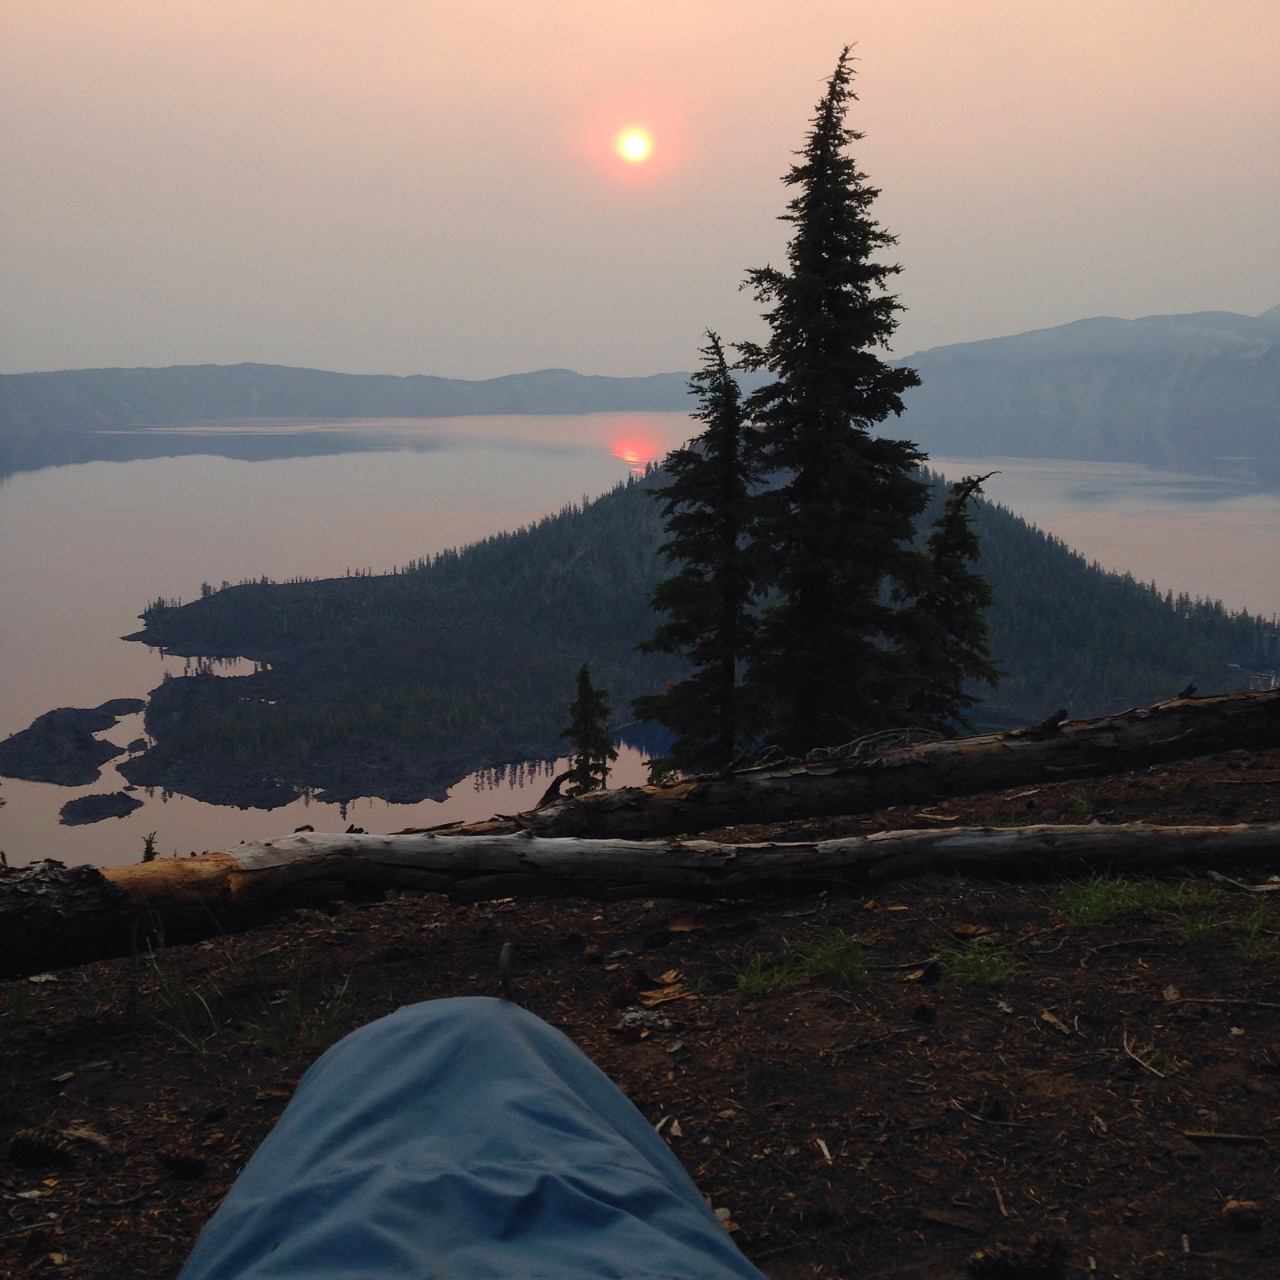 Waking up with a forest fire sunrise over Crater Lake